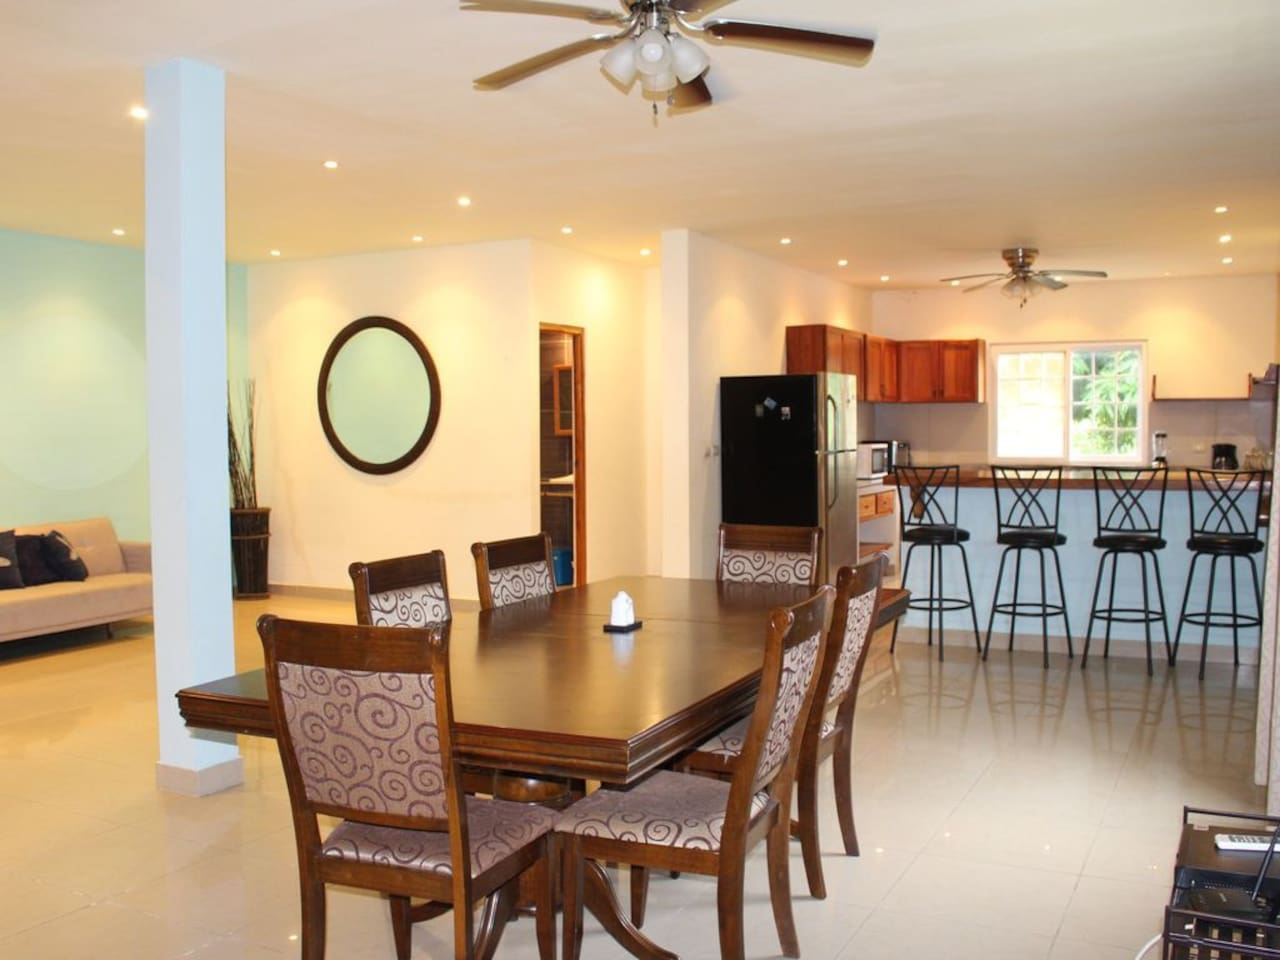 Great room featuring dining table for 6 and bar seating for 4.